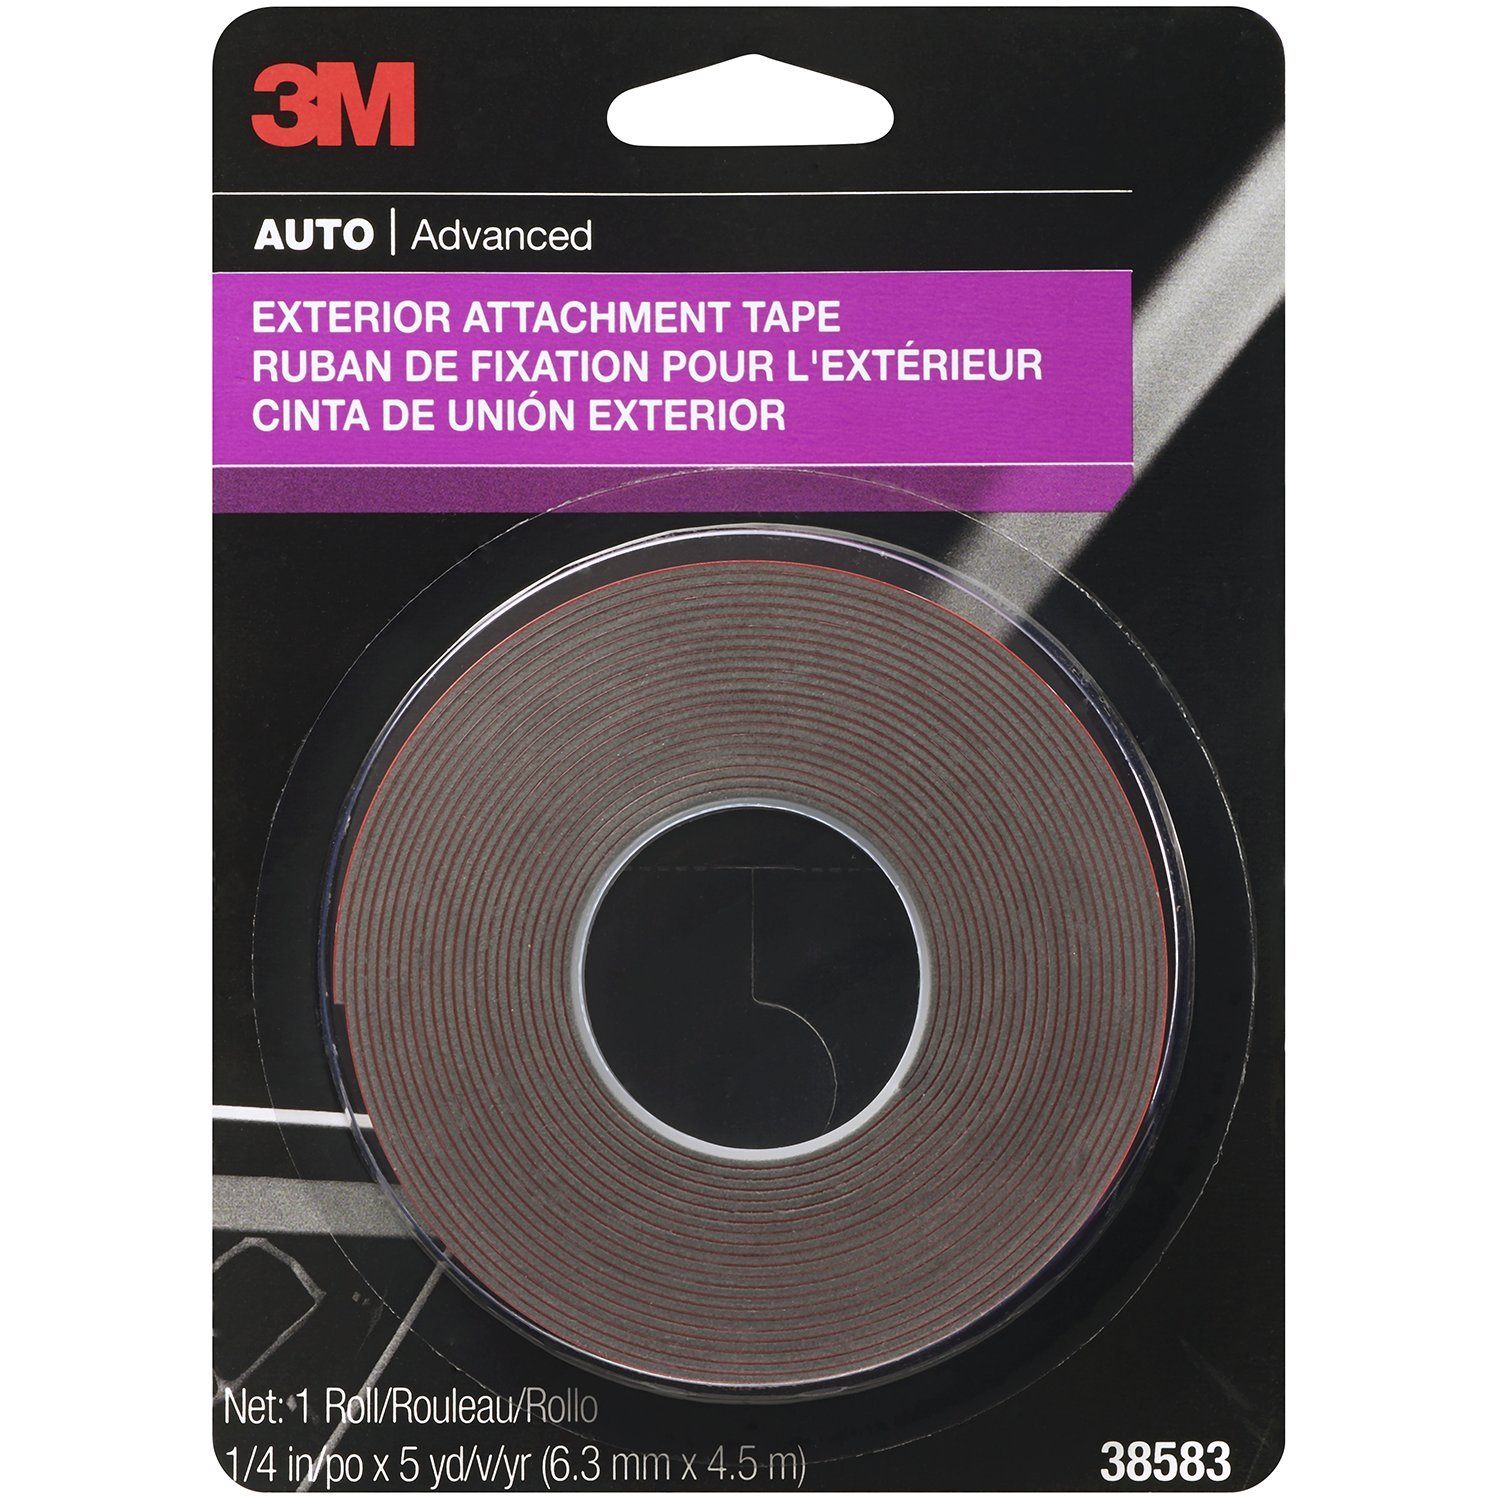 3M 38583 1/4'' x 15' Exterior Attachment Tape (24 Pack) by 3M